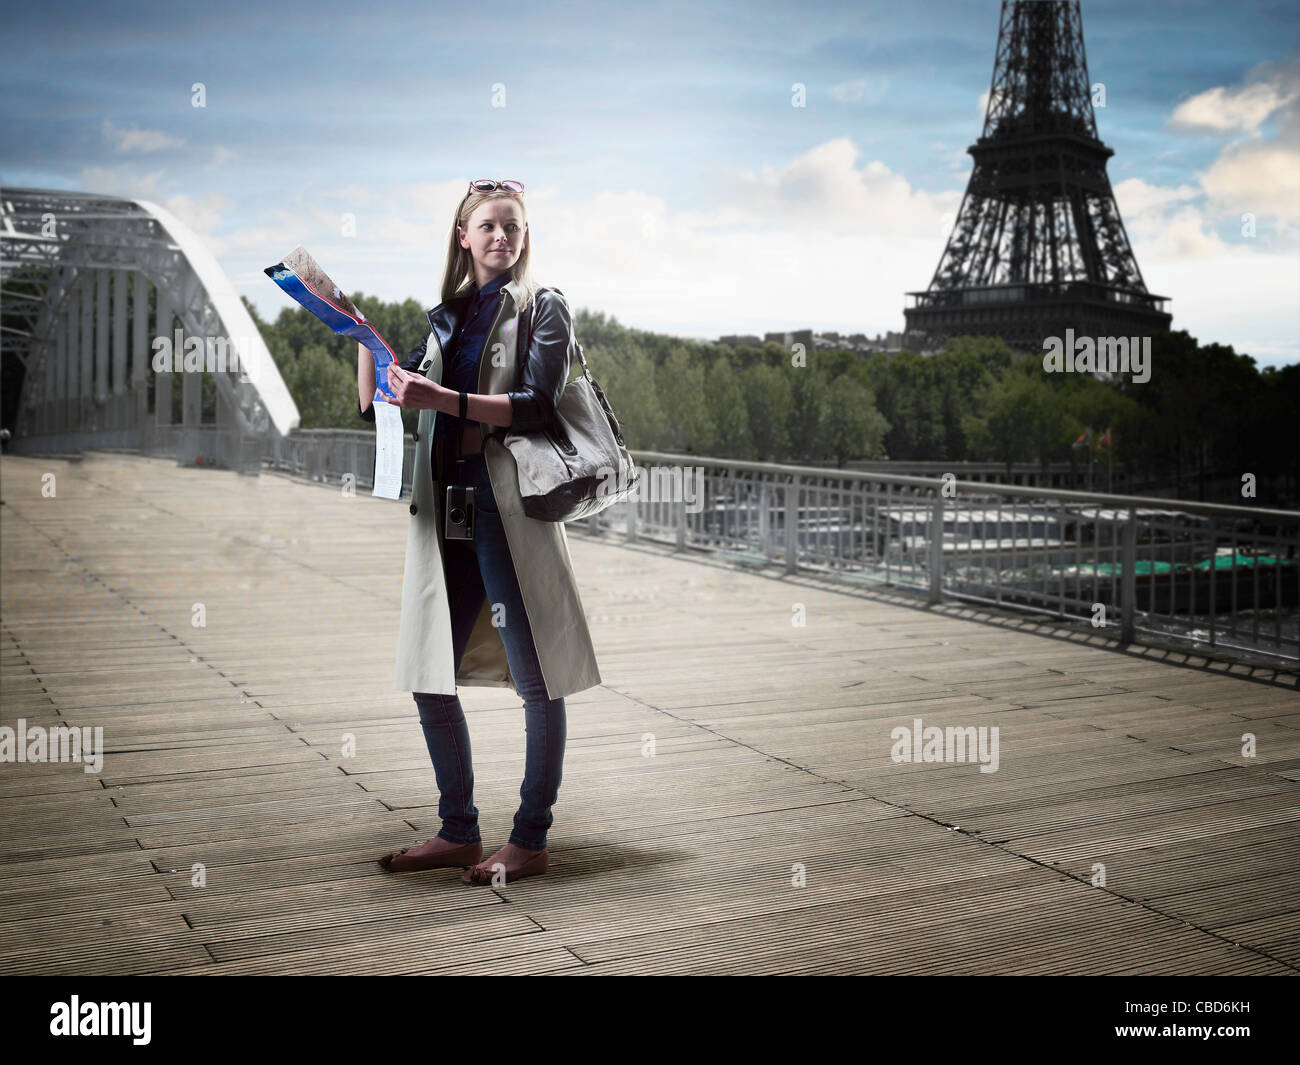 Woman reading map in city center - Stock Image